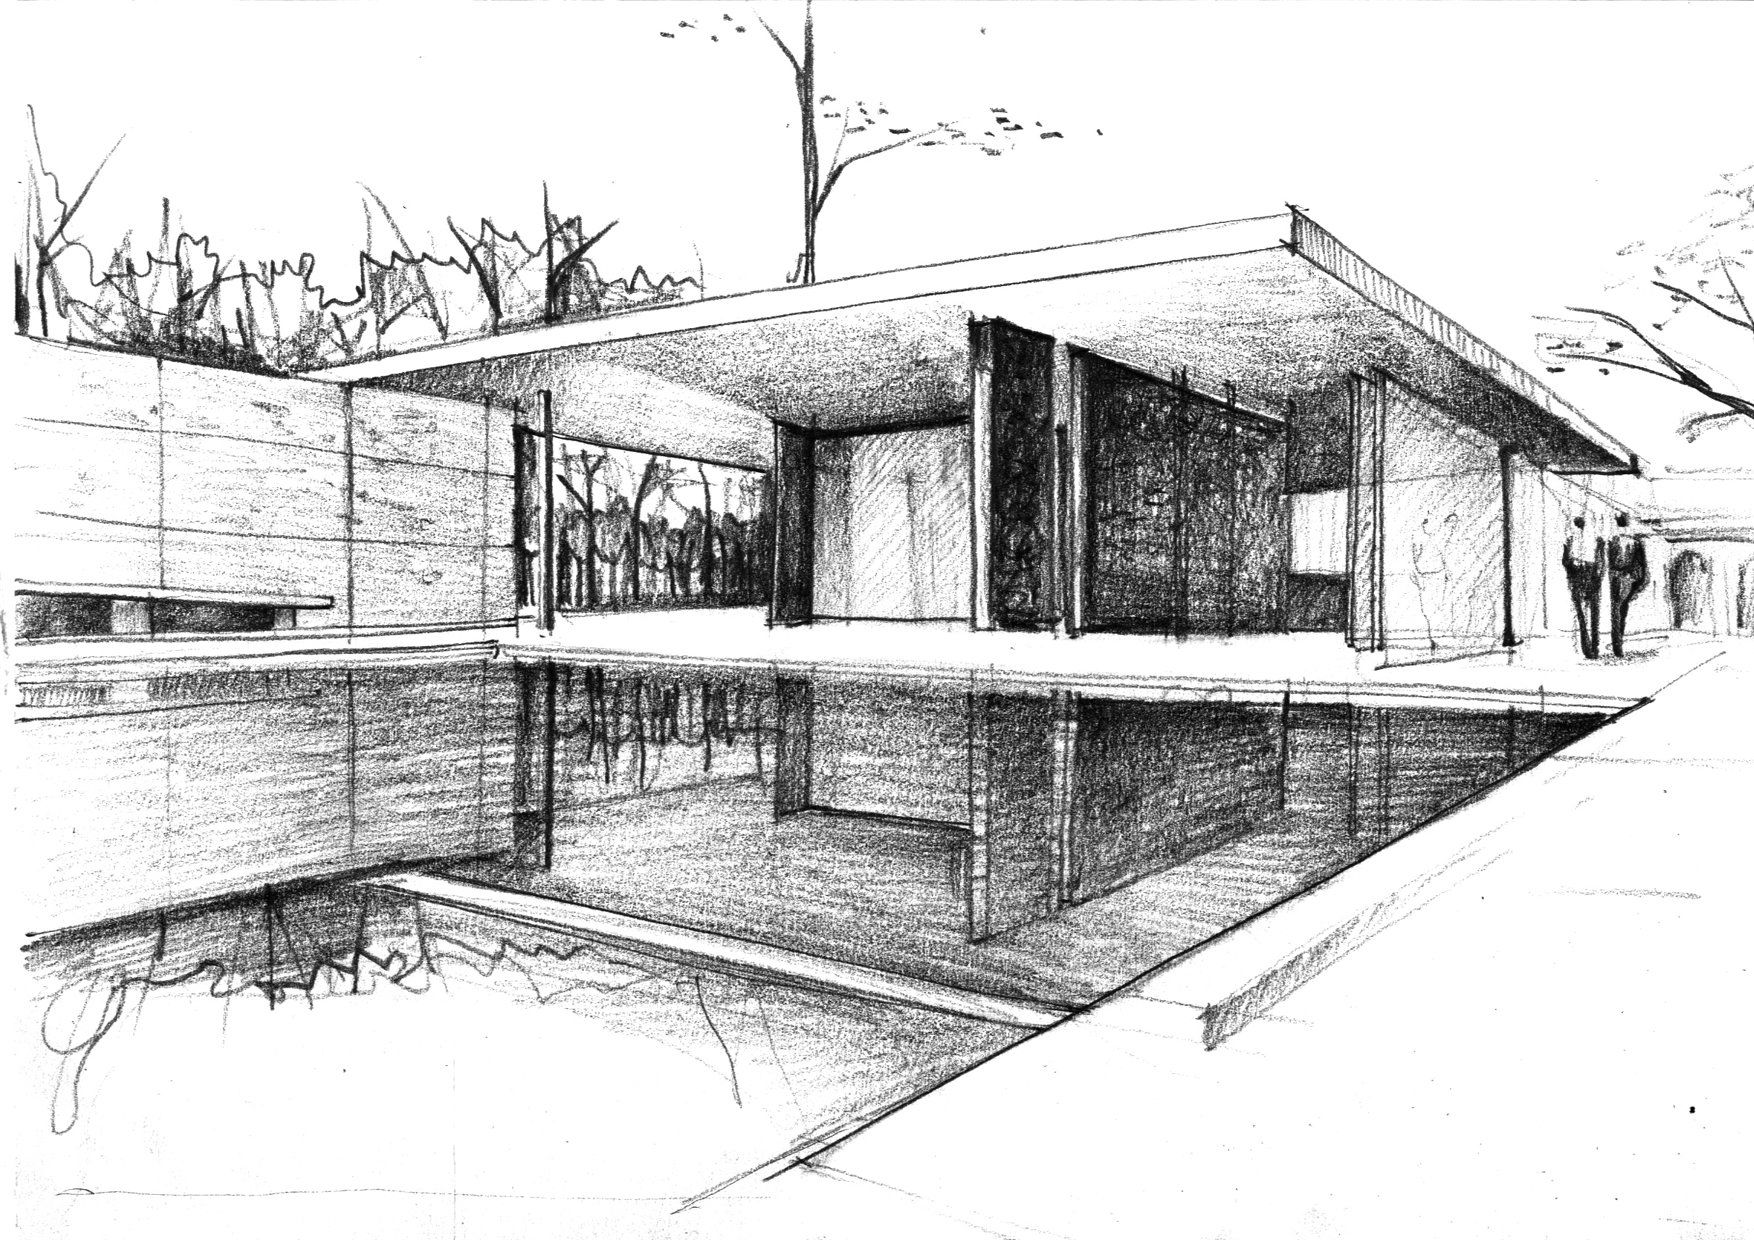 mies van der rohe architecture sketches google search sketches pinterest architektur. Black Bedroom Furniture Sets. Home Design Ideas